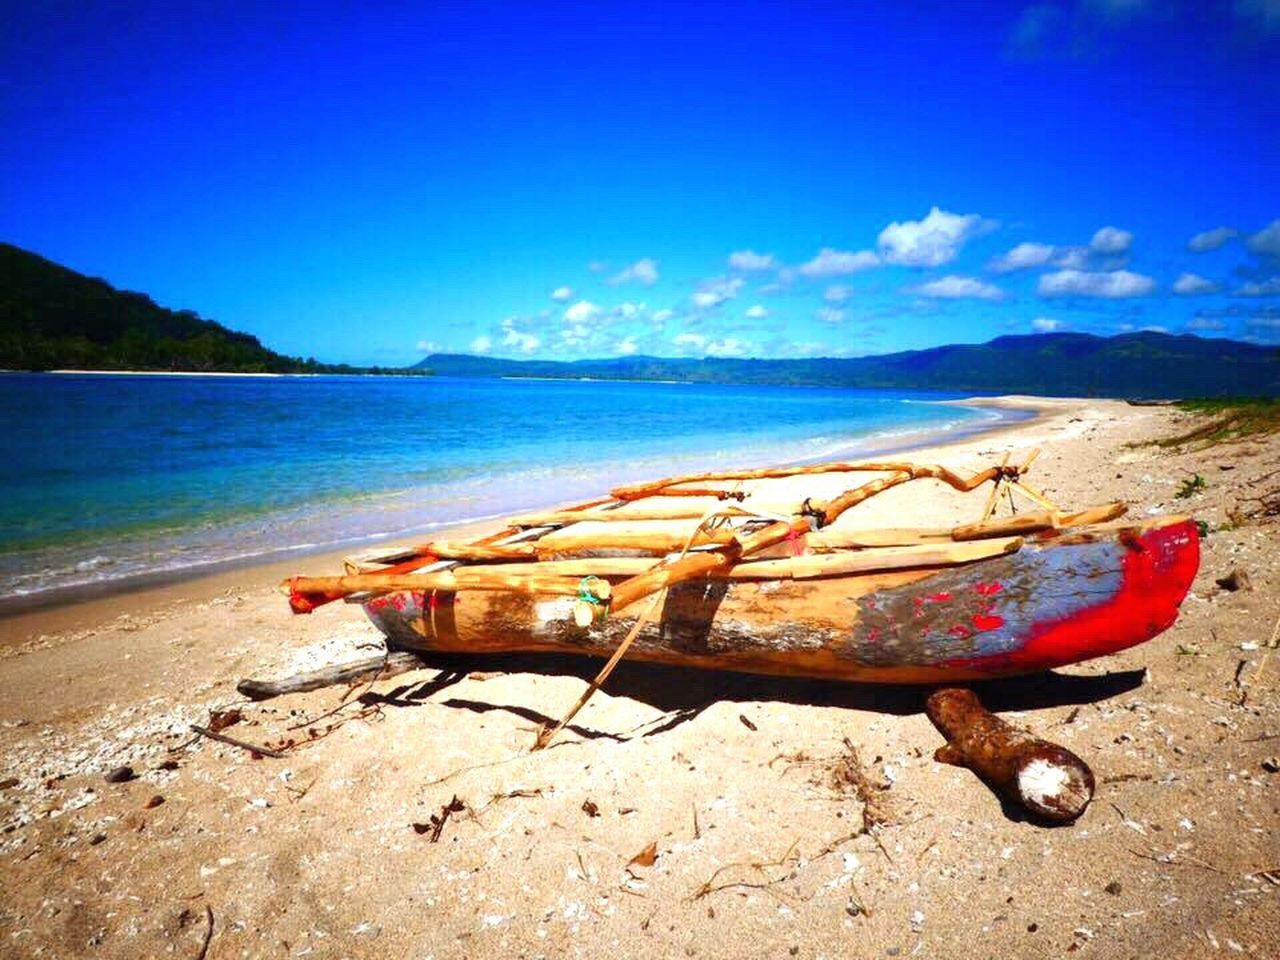 I'm back in beautiful Vanuatu next week. Stay tuned for photos of my adventure and service work ❤️🌎 Beach Sand Sea Shore Water Nautical Vessel Nature Moored Sky No People Scenics Beauty In Nature Transportation Day Mode Of Transport Tranquil Scene Outdoors Tranquility Sunlight Blue Travel Wanderlust Vanuatu Service Connected By Travel